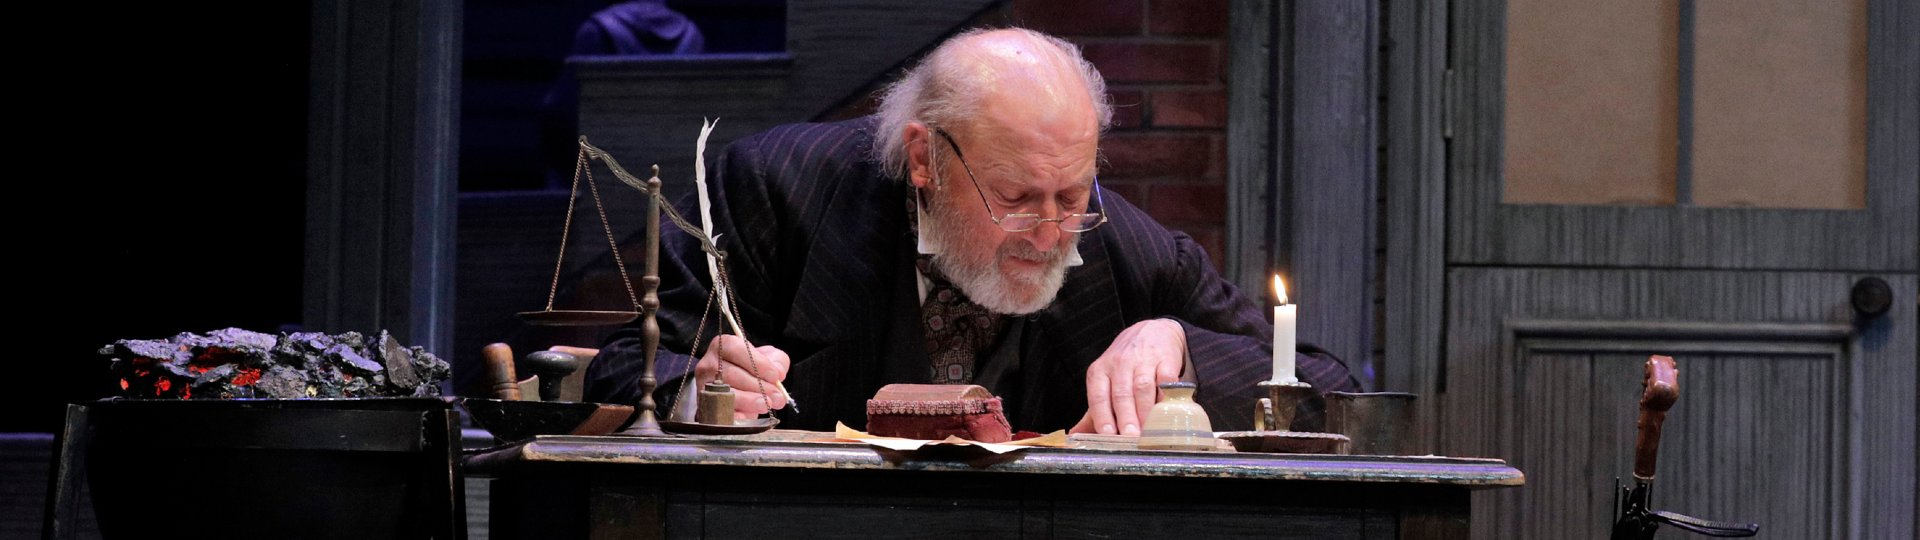 Old man in Victorian garb writing with a quill pen at a shabby desk